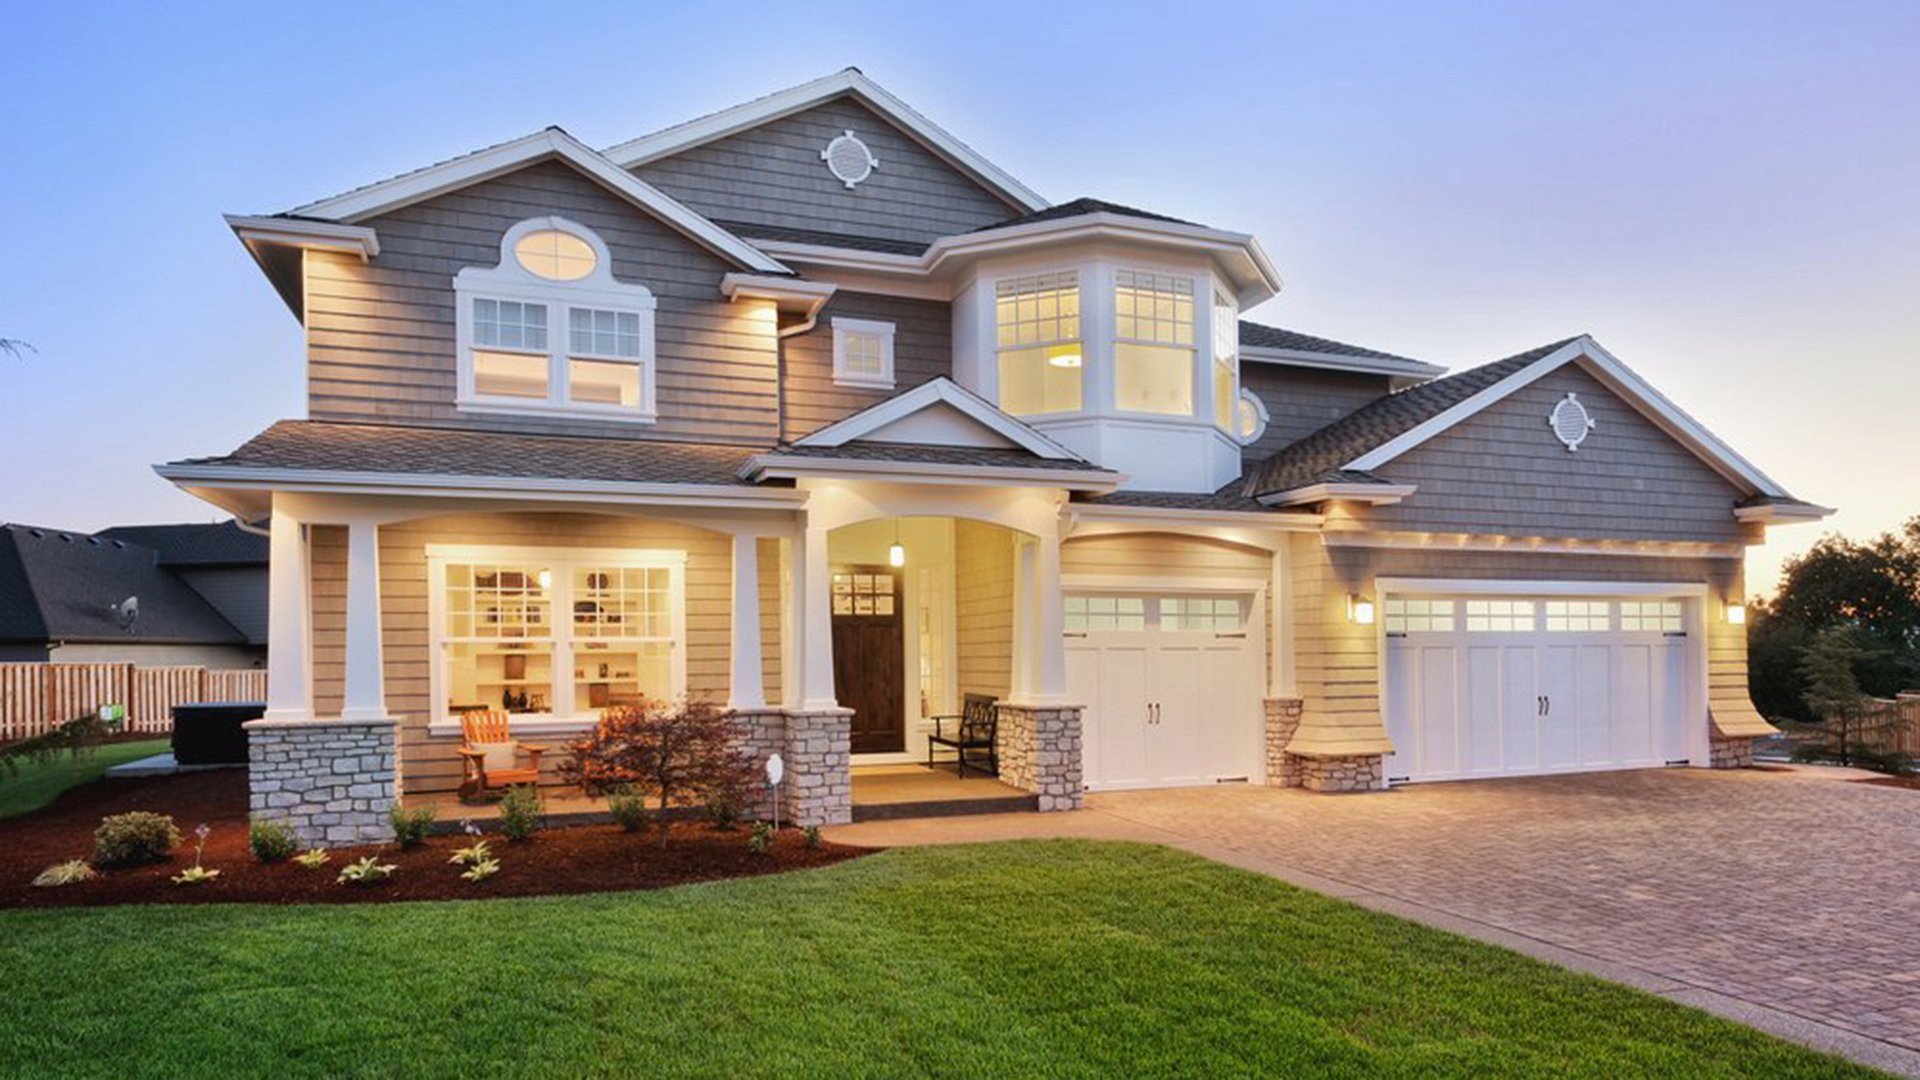 Ideas to Make Home Enhancements Affordable